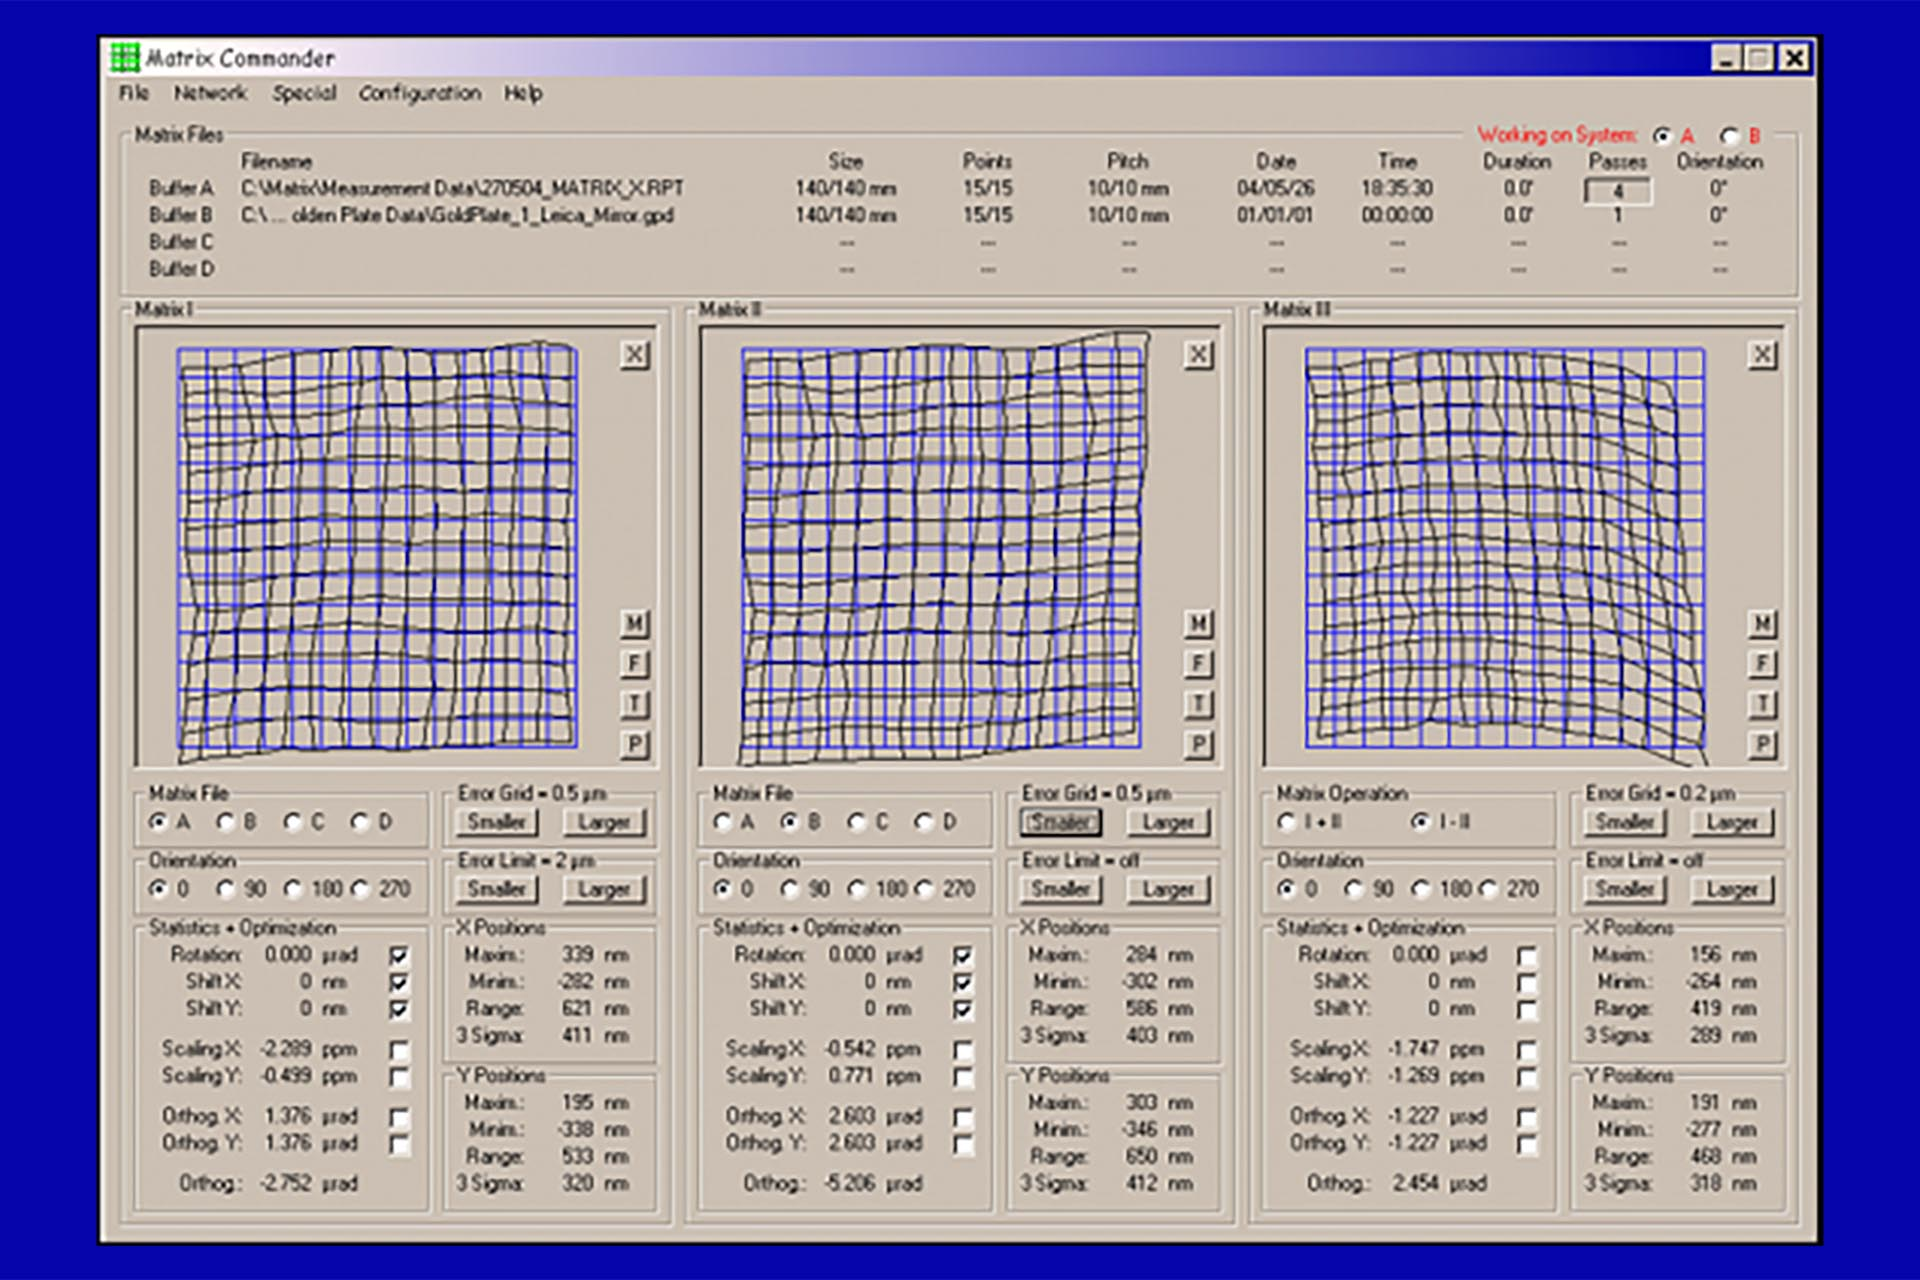 A position correction matrix (KOMA) is calculated in the software based on measurements with a well-calibrated reference plate (golden plate). This enables corrections for e.g. slightly warped or non-flat interferometer mirrors.